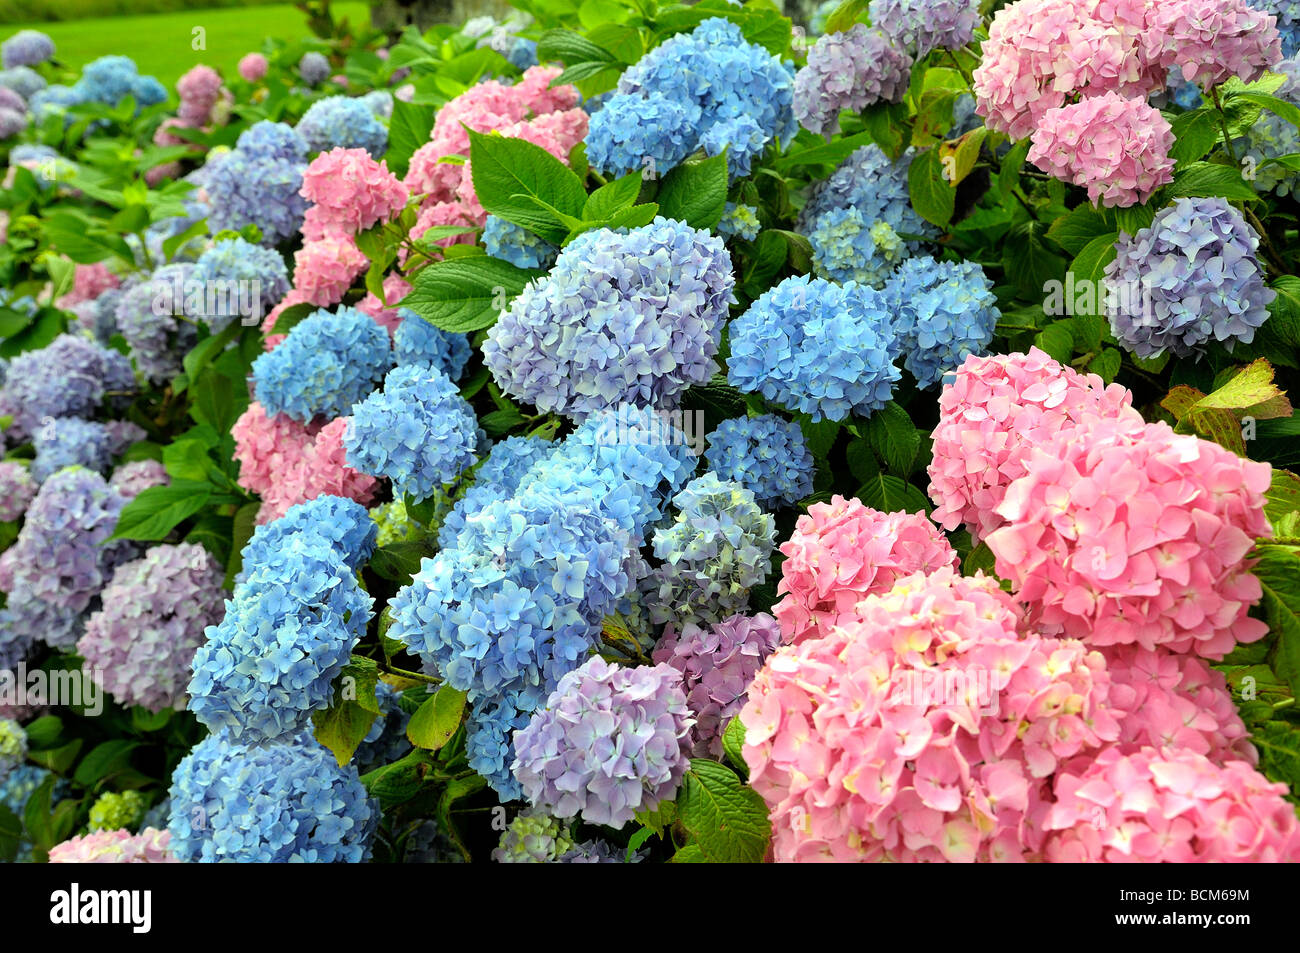 Hydrangea Bush Showing Both Pink And Blue Flowers Stock Photo